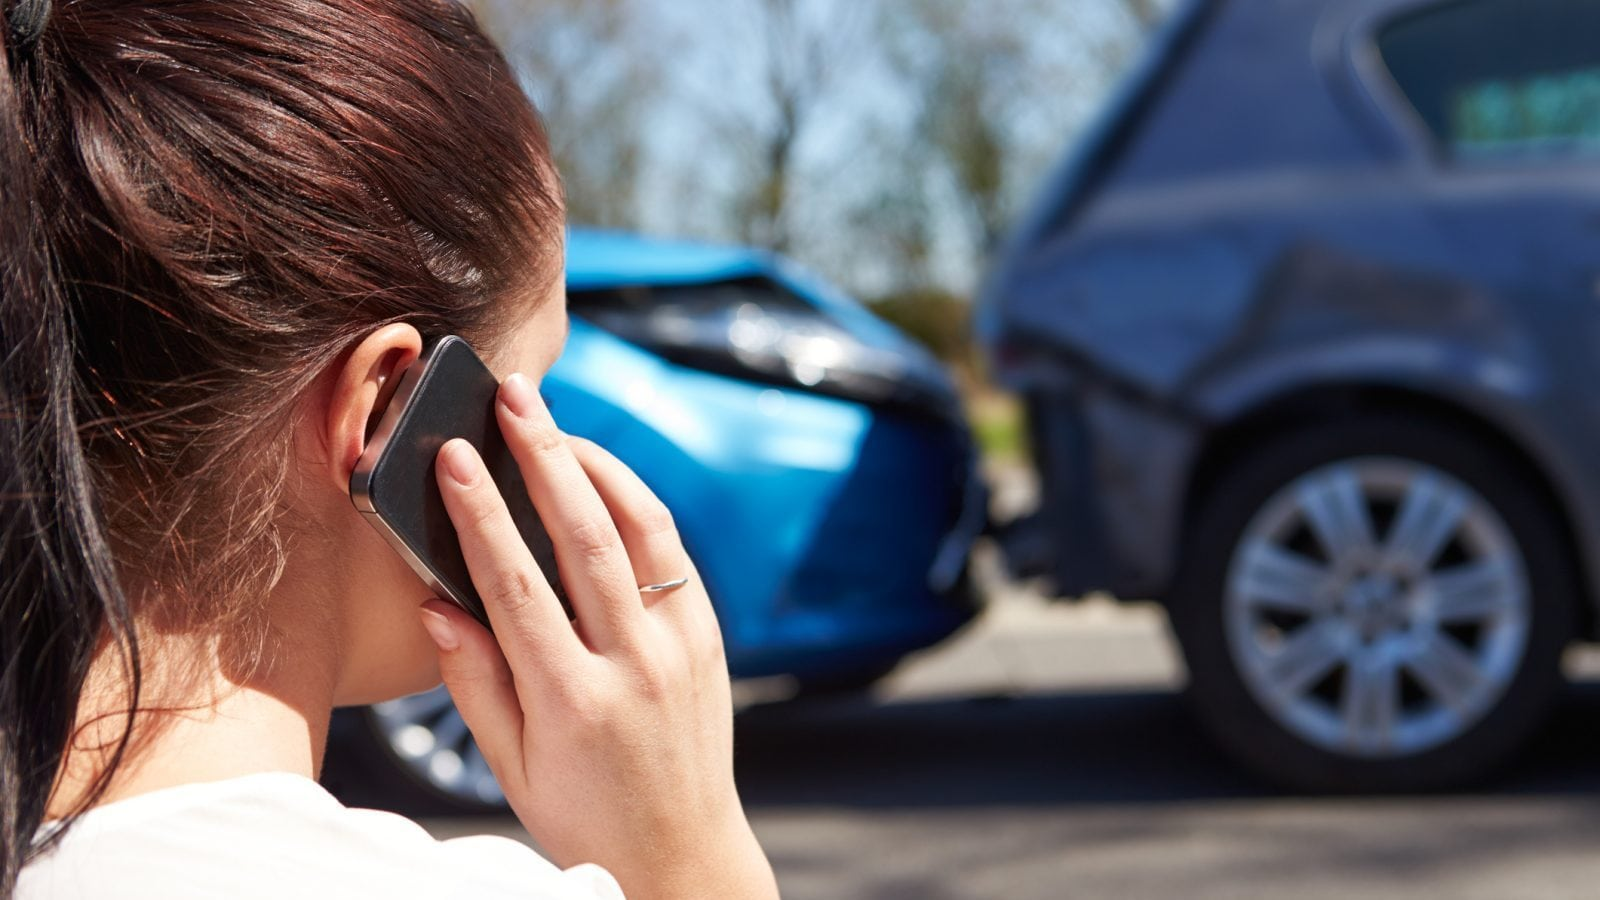 Woman Car Accident Aftermath Stock Photo